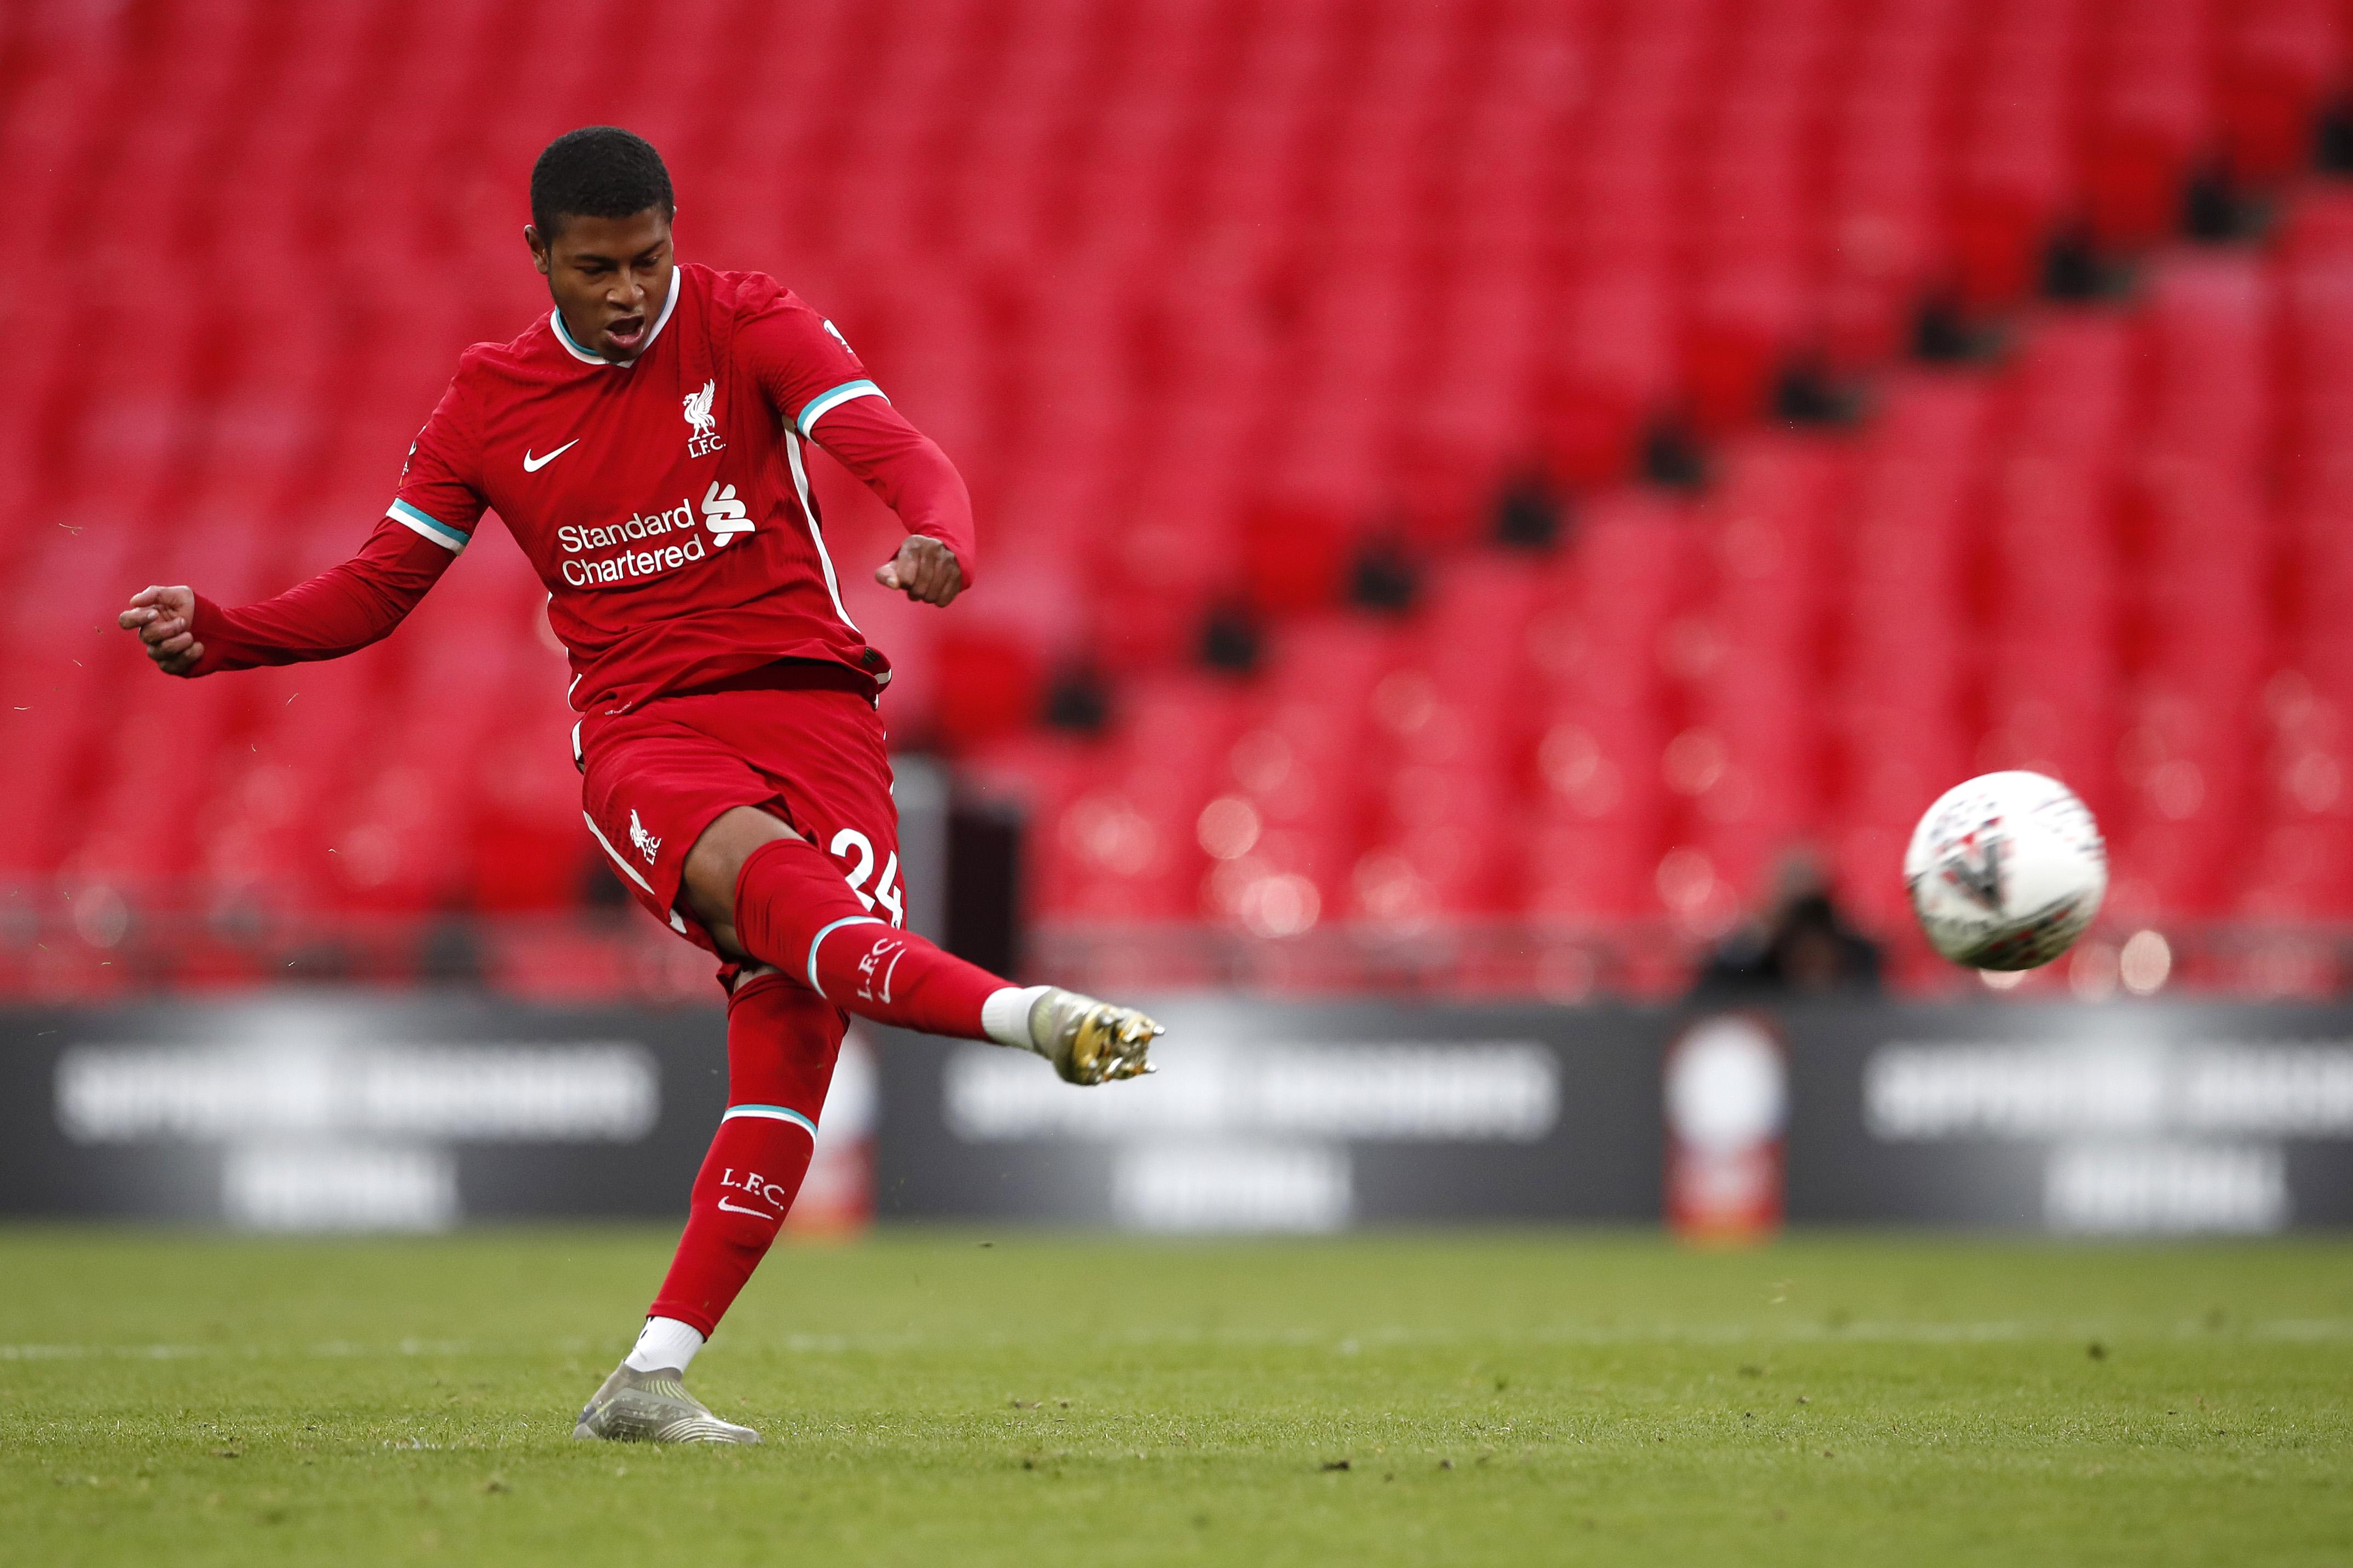 Sheff Utd Sign Liverpool Striker Brewster For £23.5m